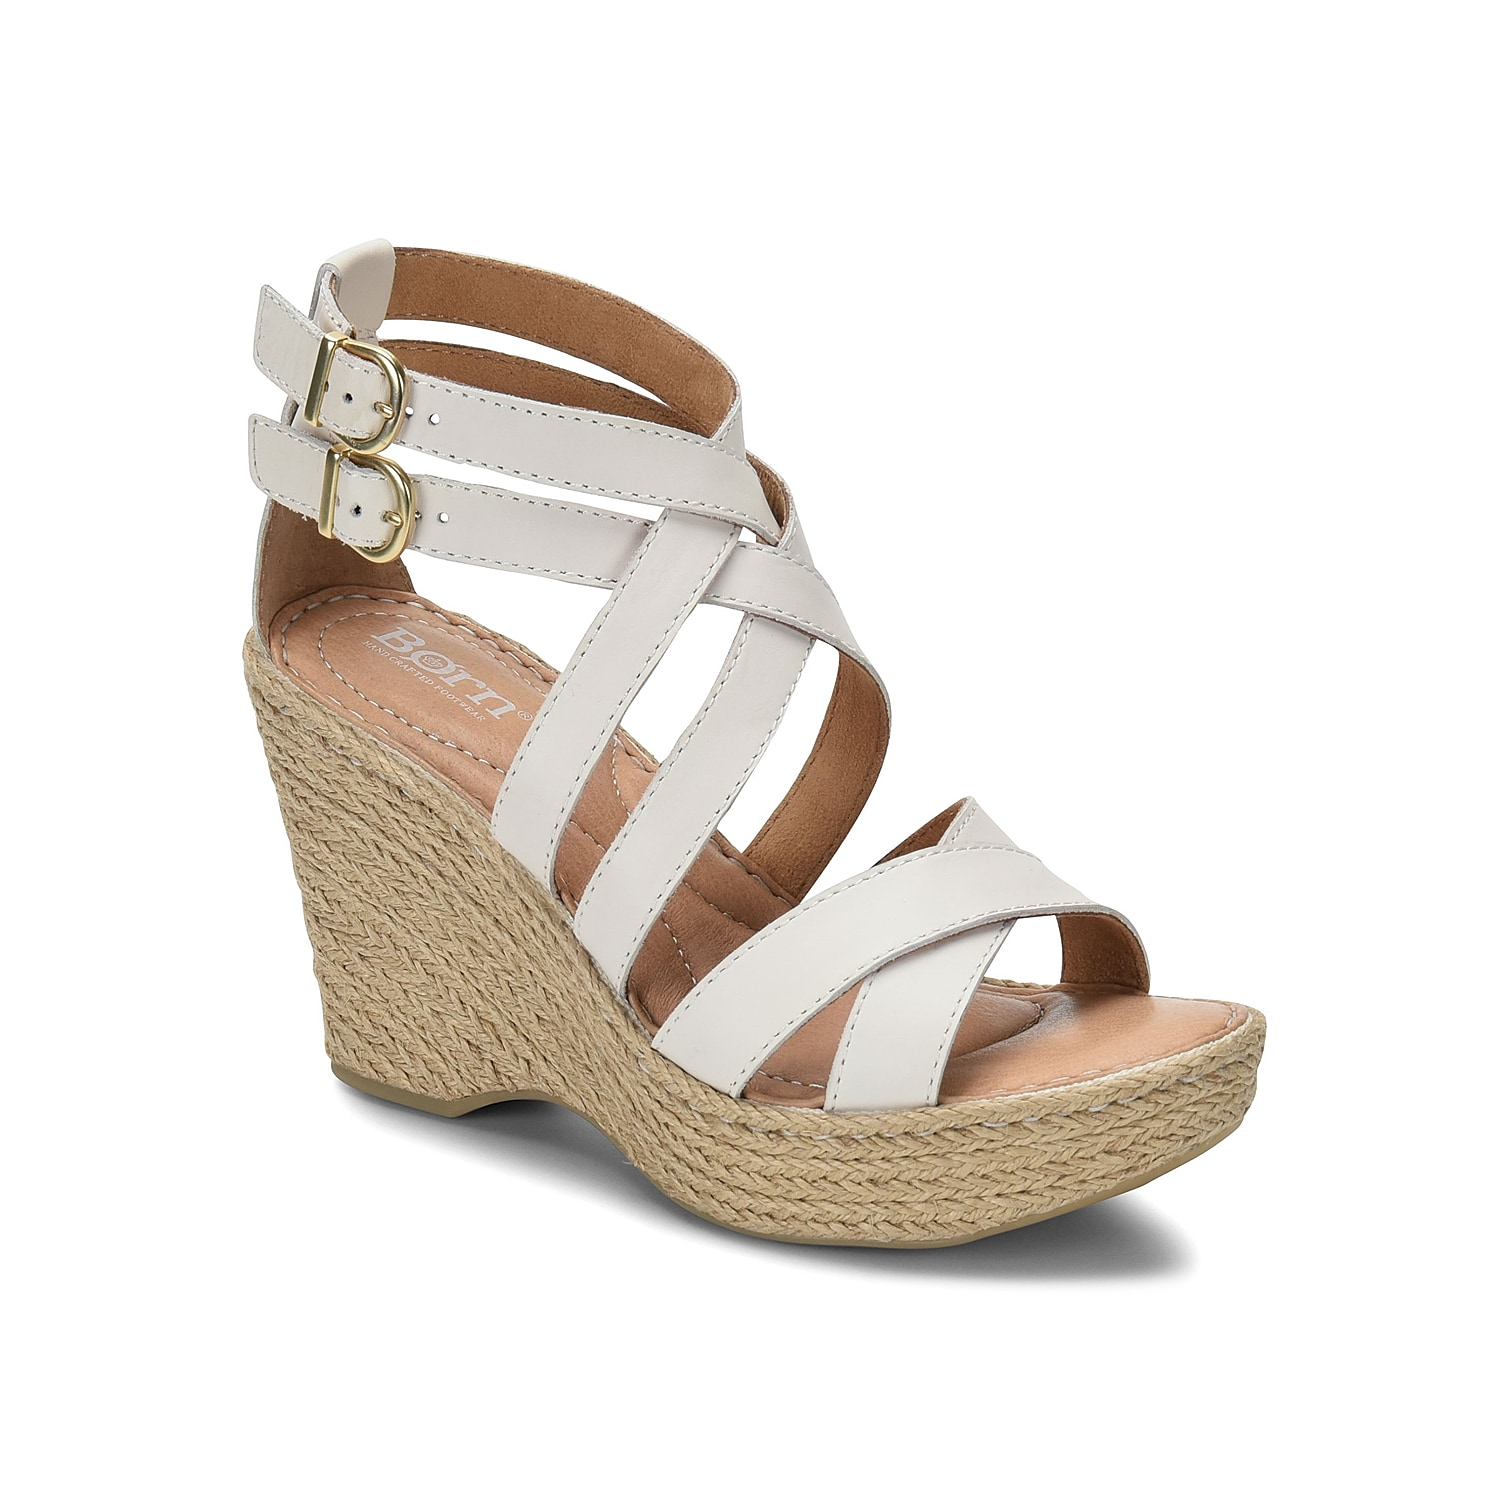 Elevate your entire look with the Sultry wedge sandal from Born. This silhouette is fashioned with leather straps sitting atop of an espadrille midsole that will give your ensemble a modern style!